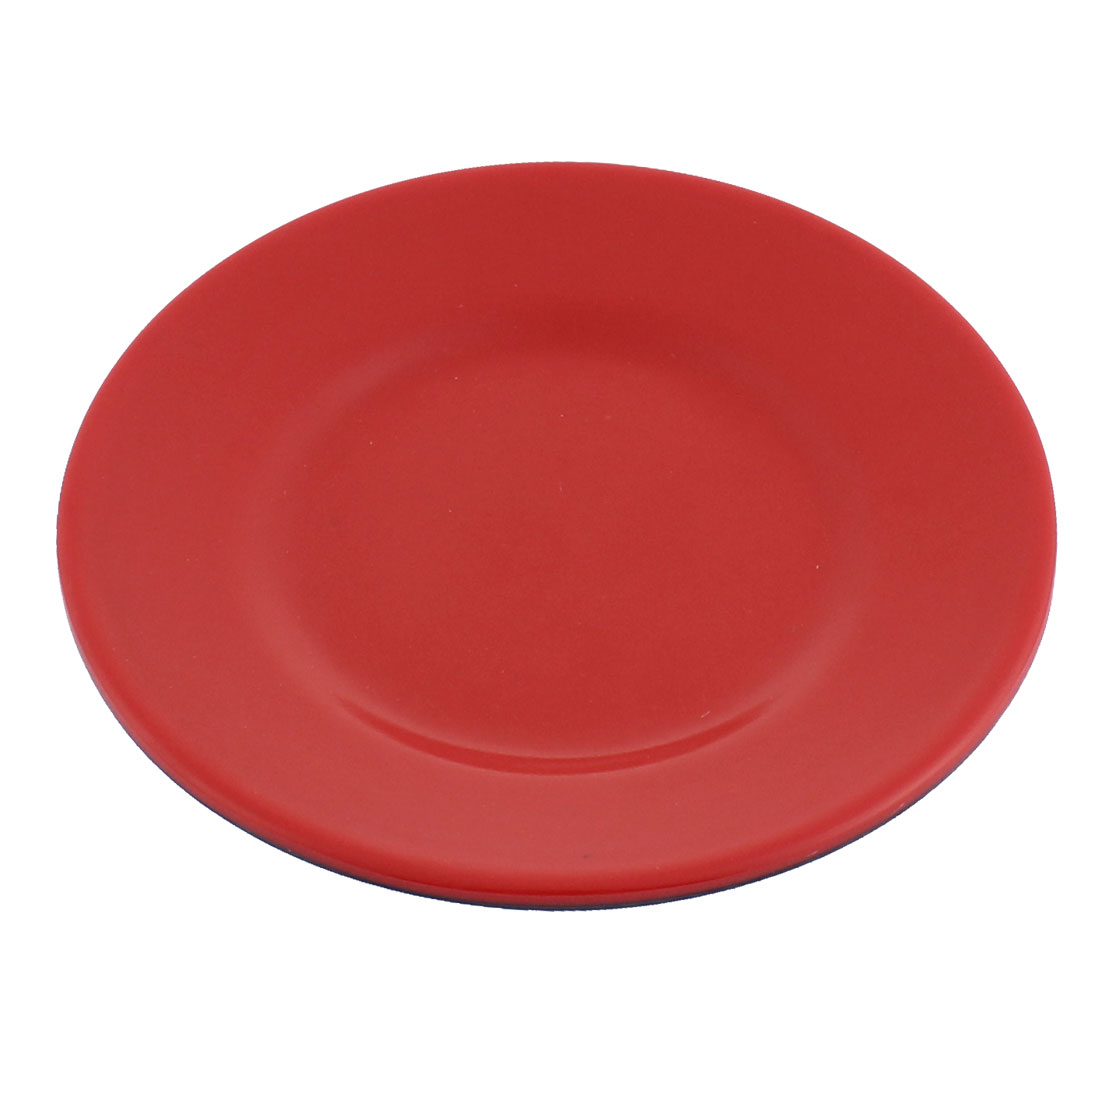 "Restaurant Hot Pot Plastic Food Snacks Mini Dish Plate Tableware Red Black 5"" Dia"